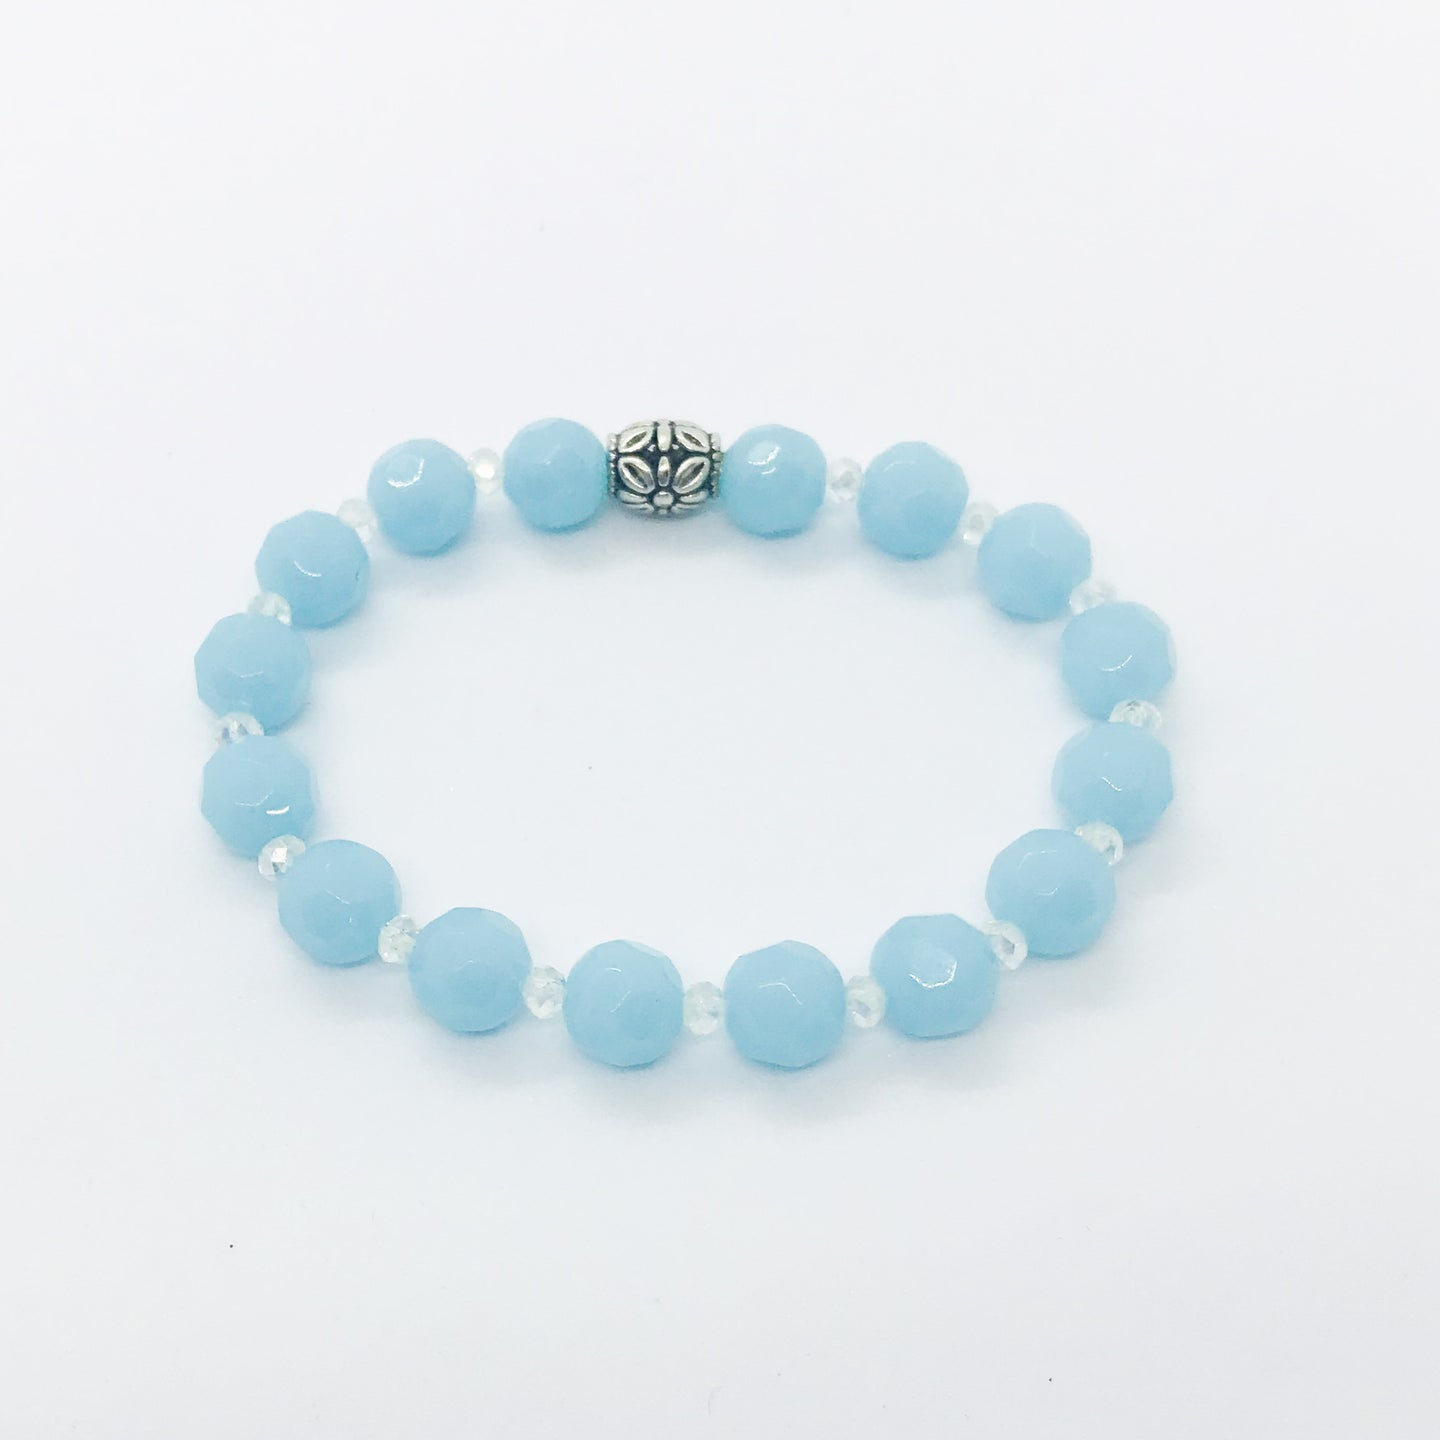 Glass Bead Stretchy Bracelet - B539